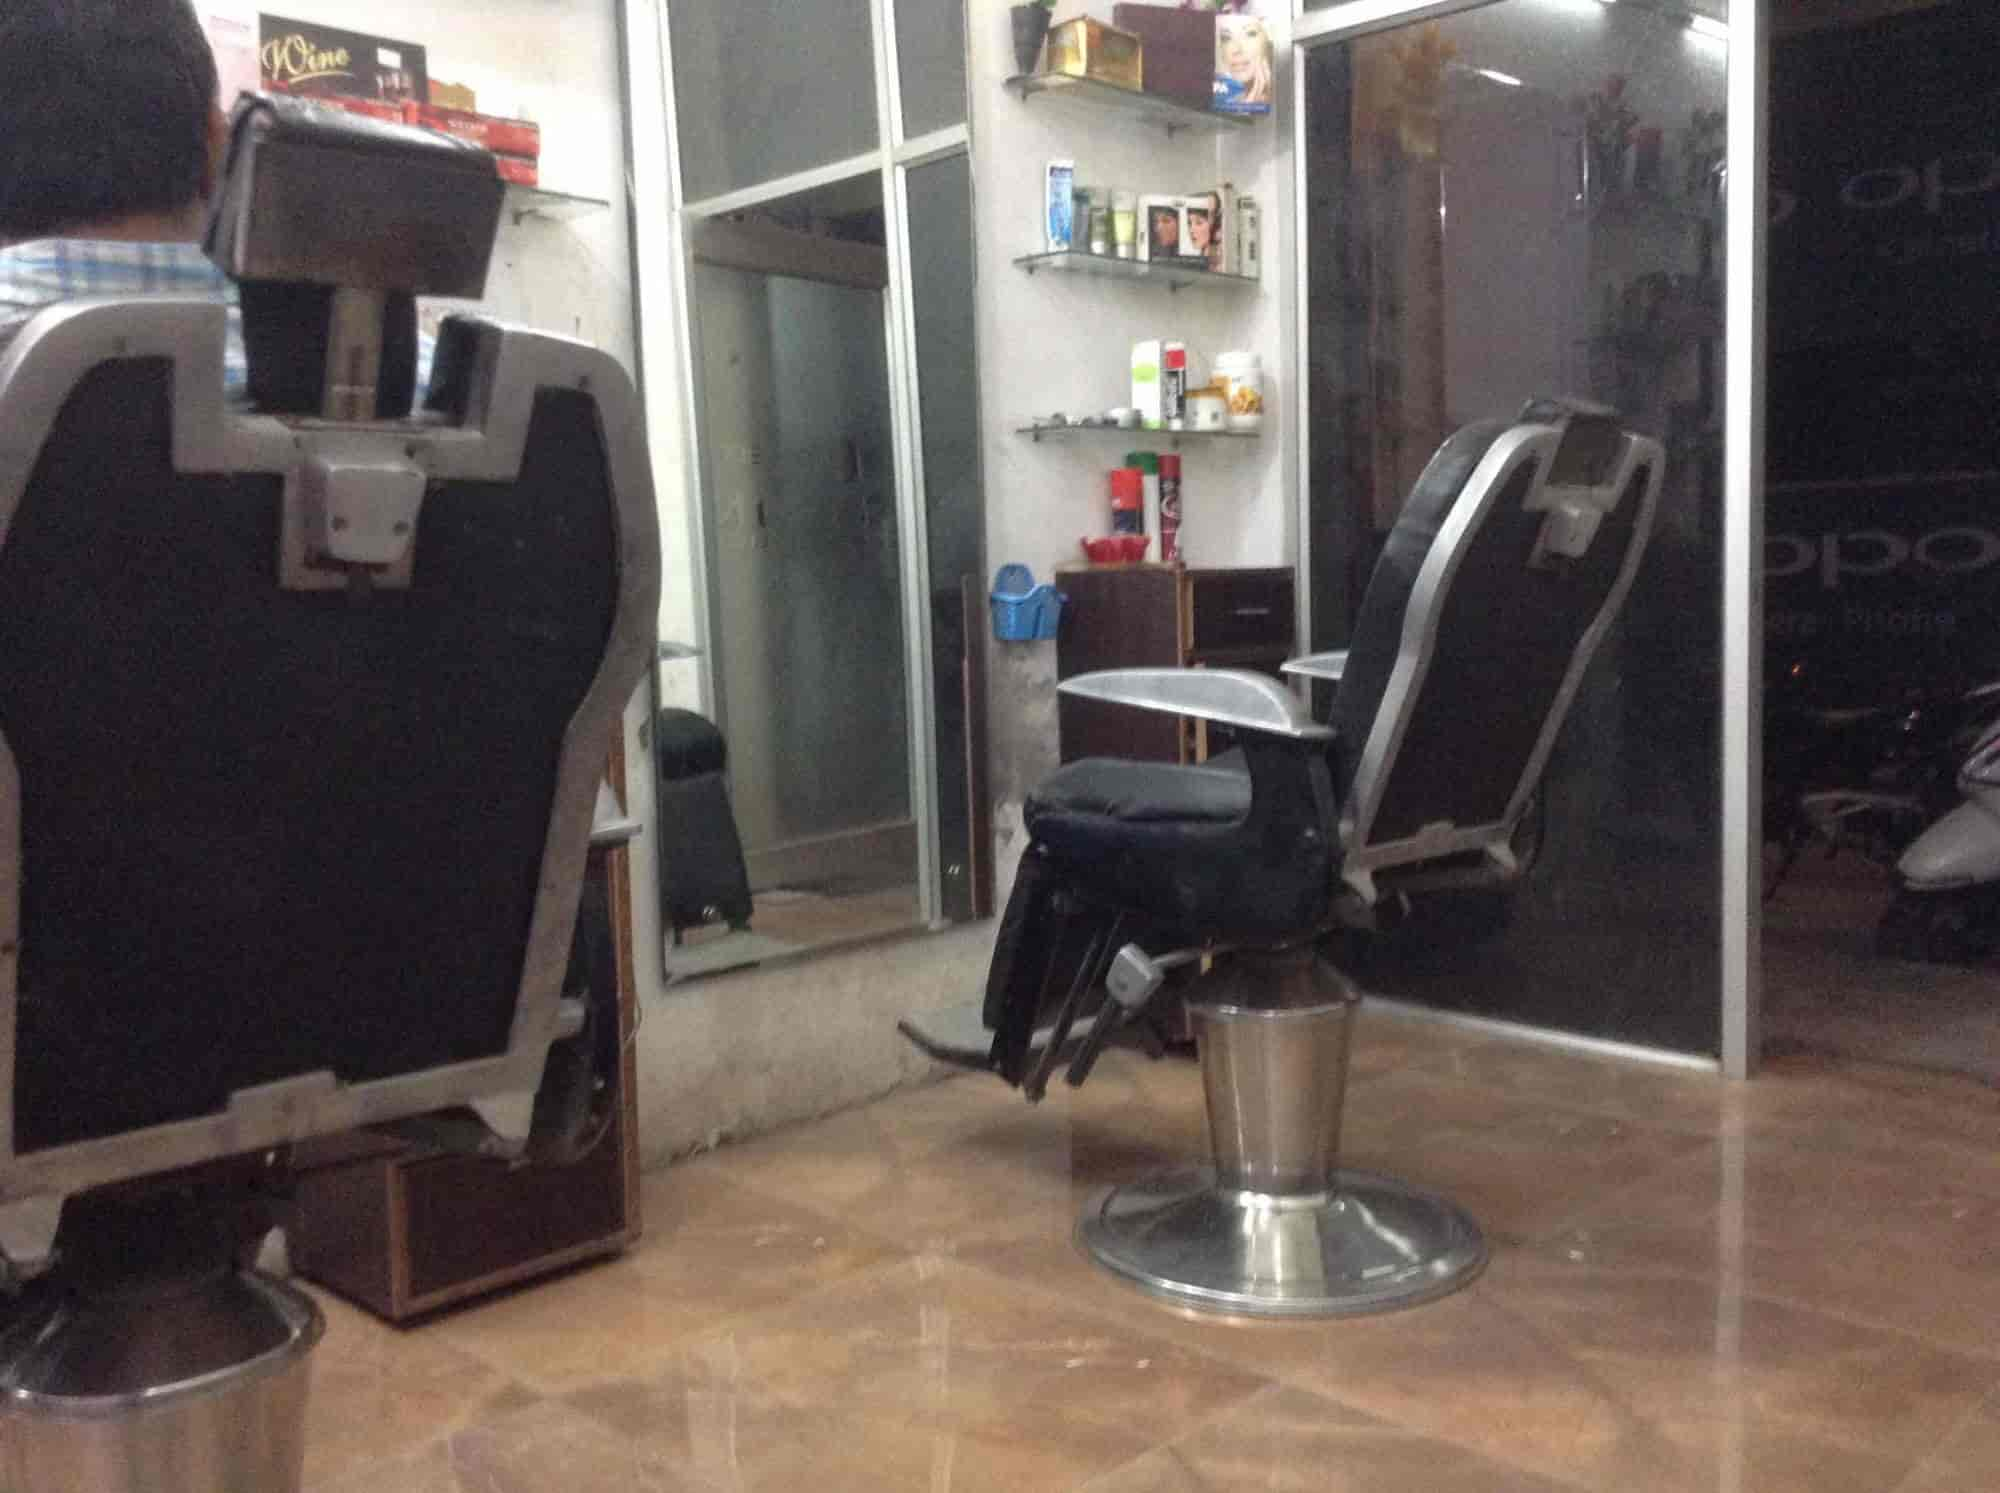 Salon Marhaba Salon Marhaba Salon Marhaba Lgant Karma Salon Llc In Ashland Wi